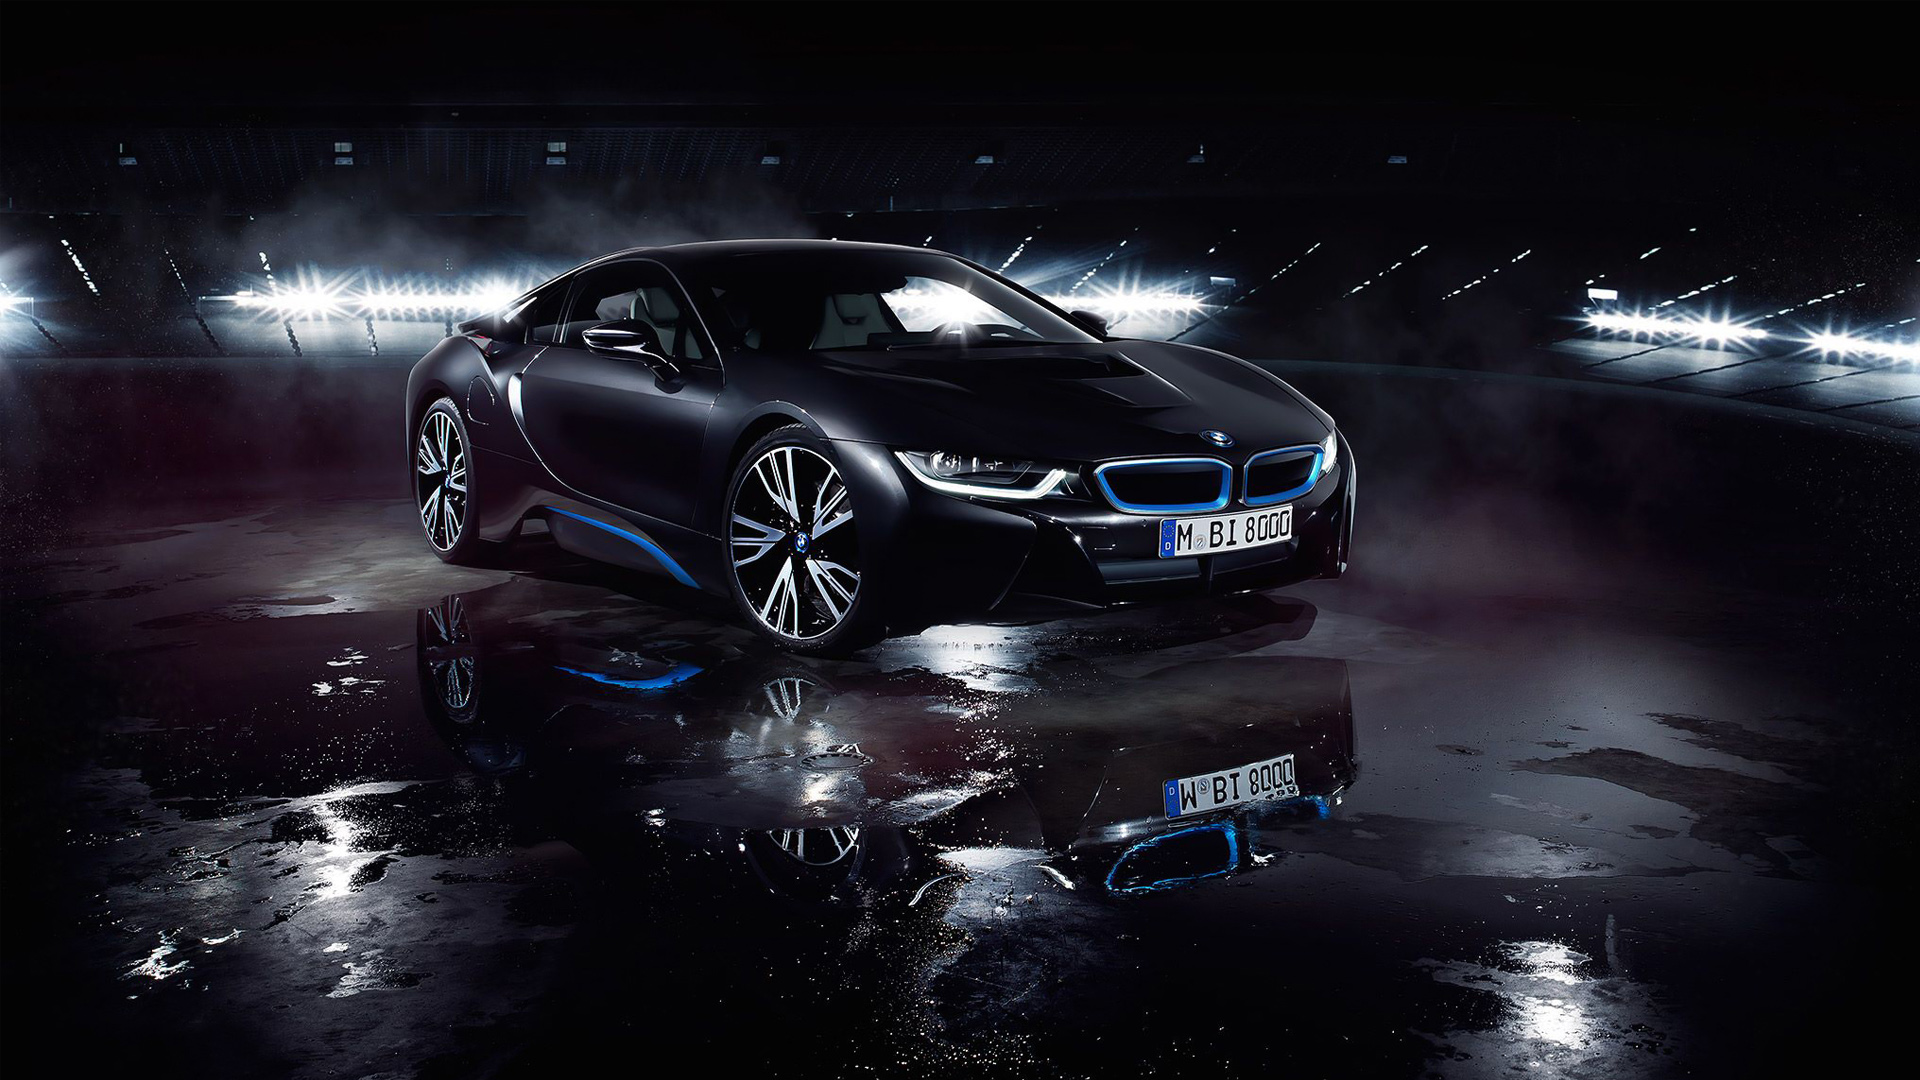 Bmw I Hd Wallpapers Backgrounds Wallpaper Abyss Bmw I Hybrid